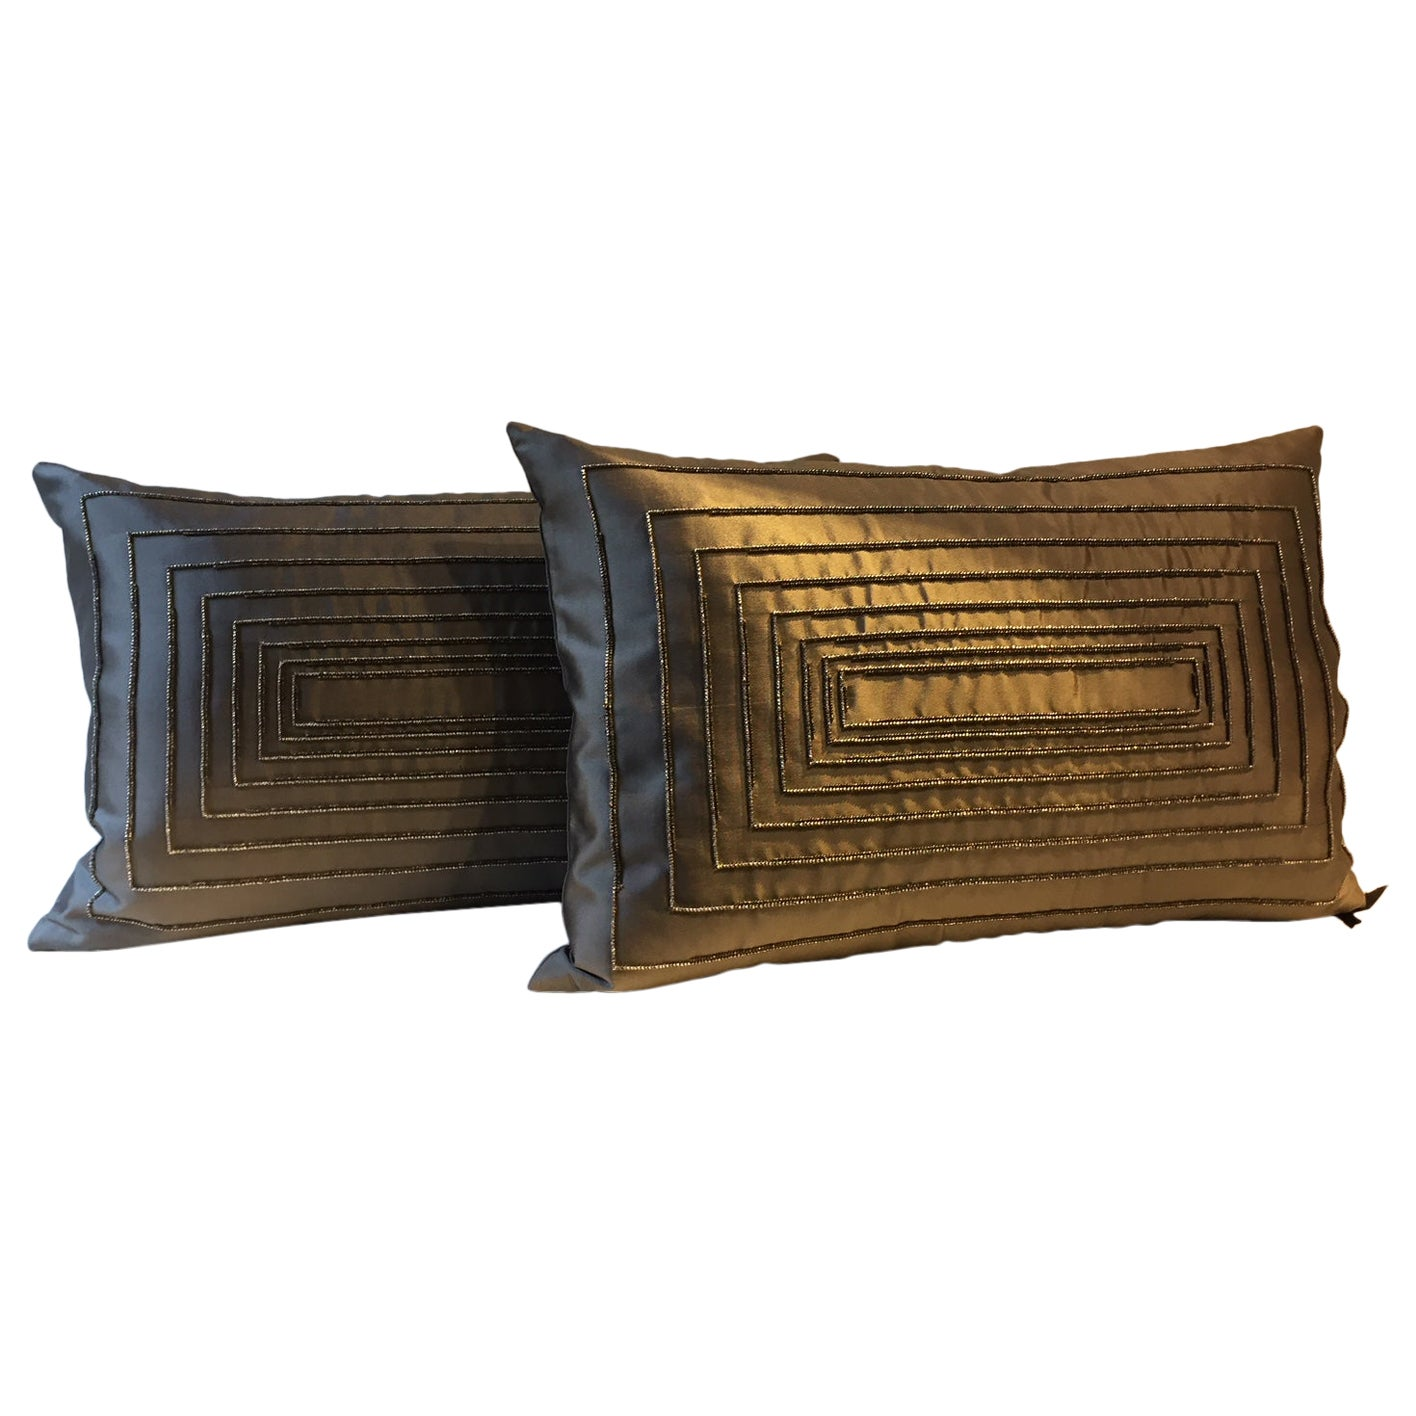 Contemporary Design Hand Embroidered Cushions in Silk Color Peppercorn Brown